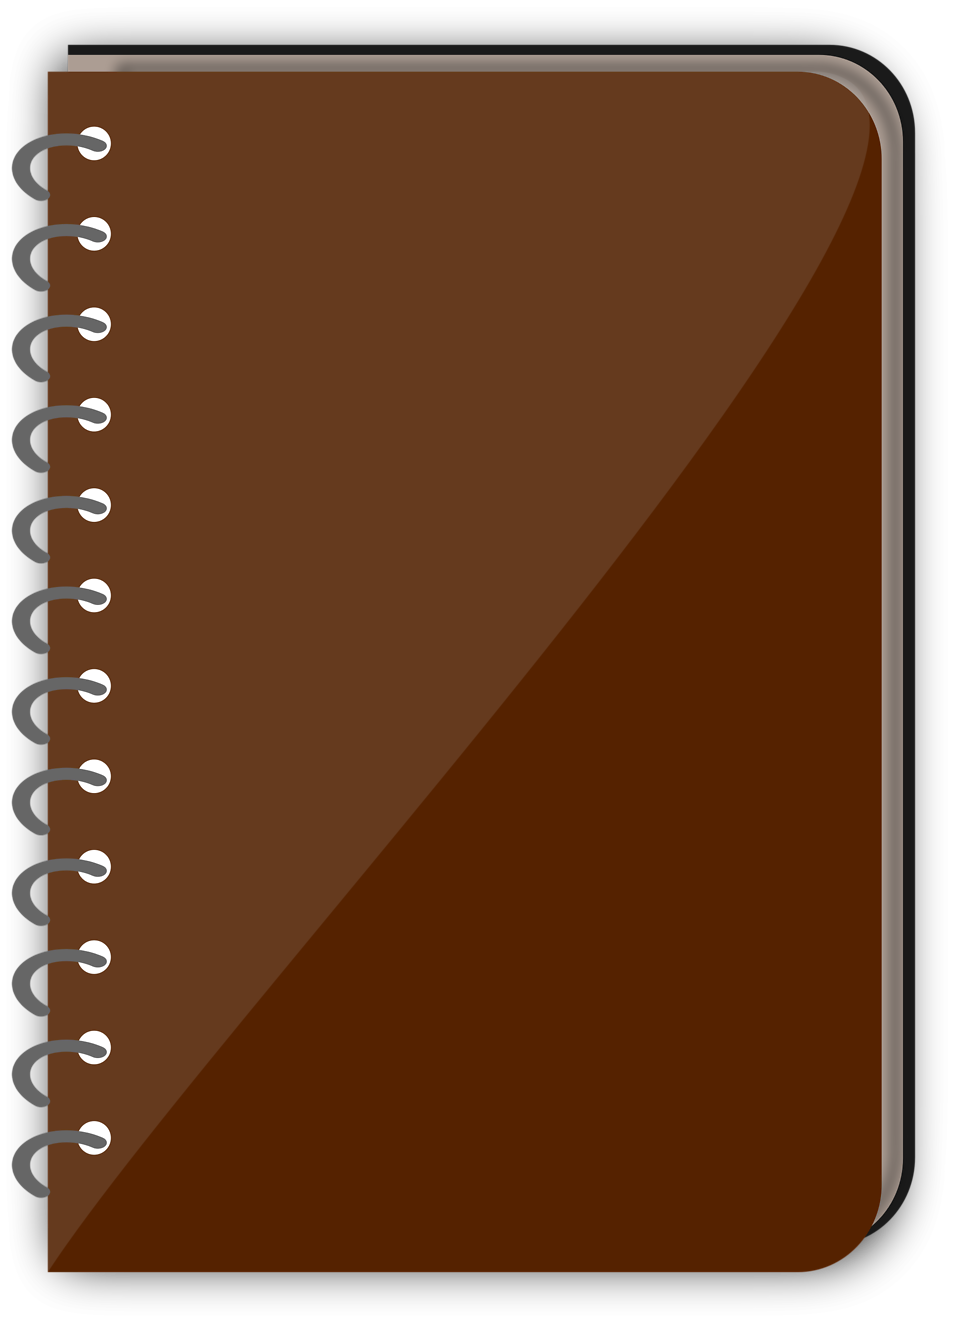 Spiral Notebook Png Of a spiral notebook with